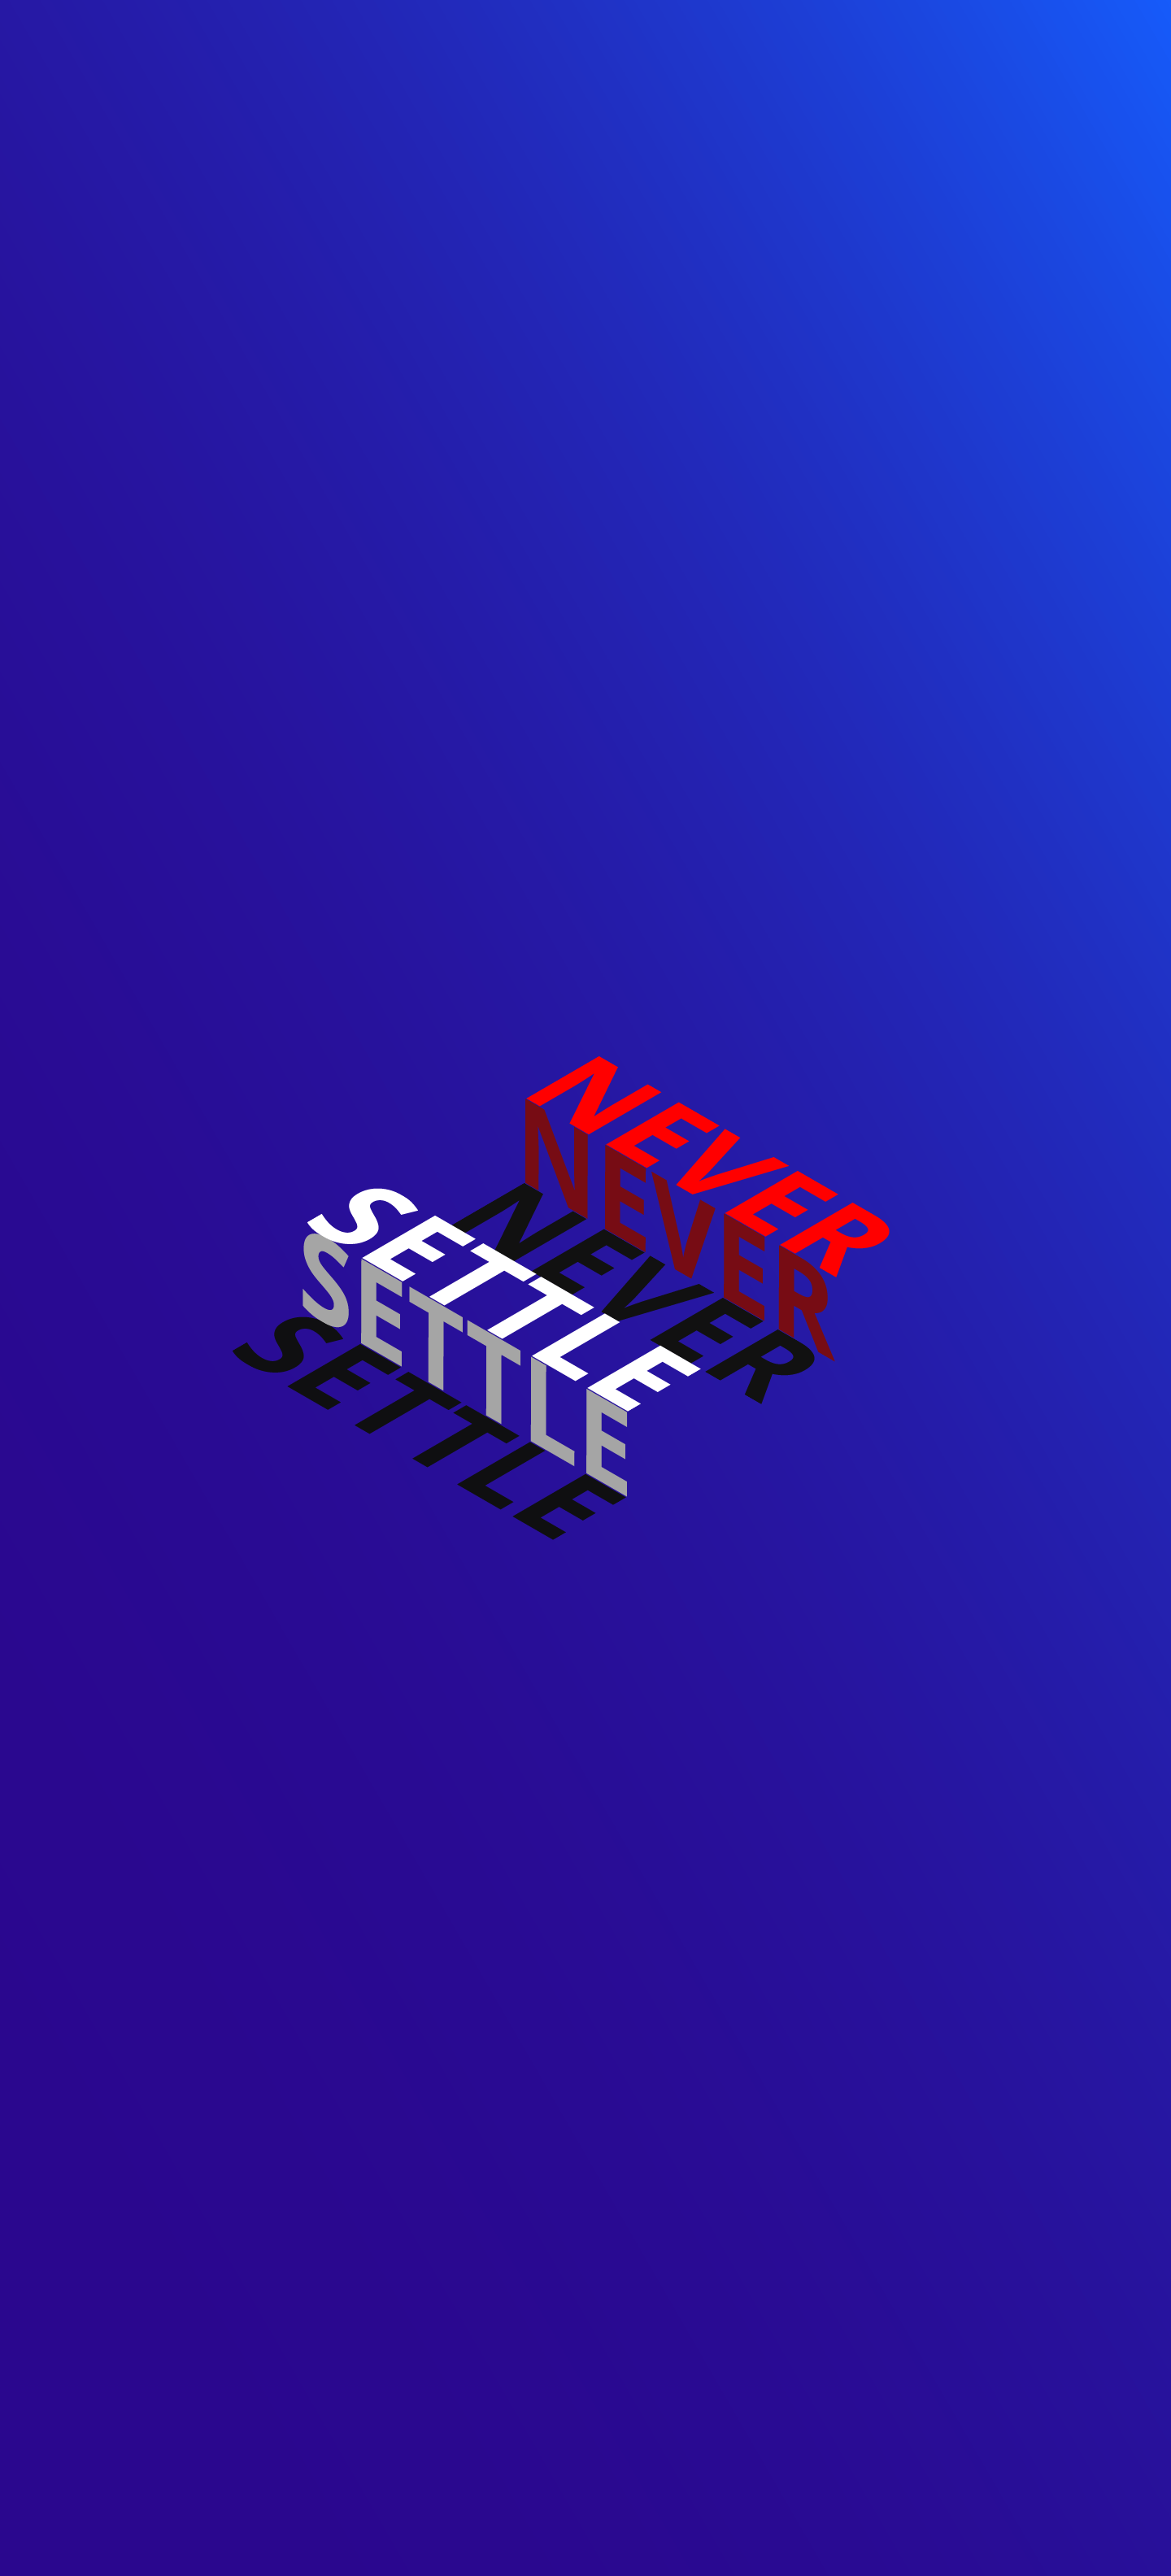 Oneplus Competition_ultramarine.png